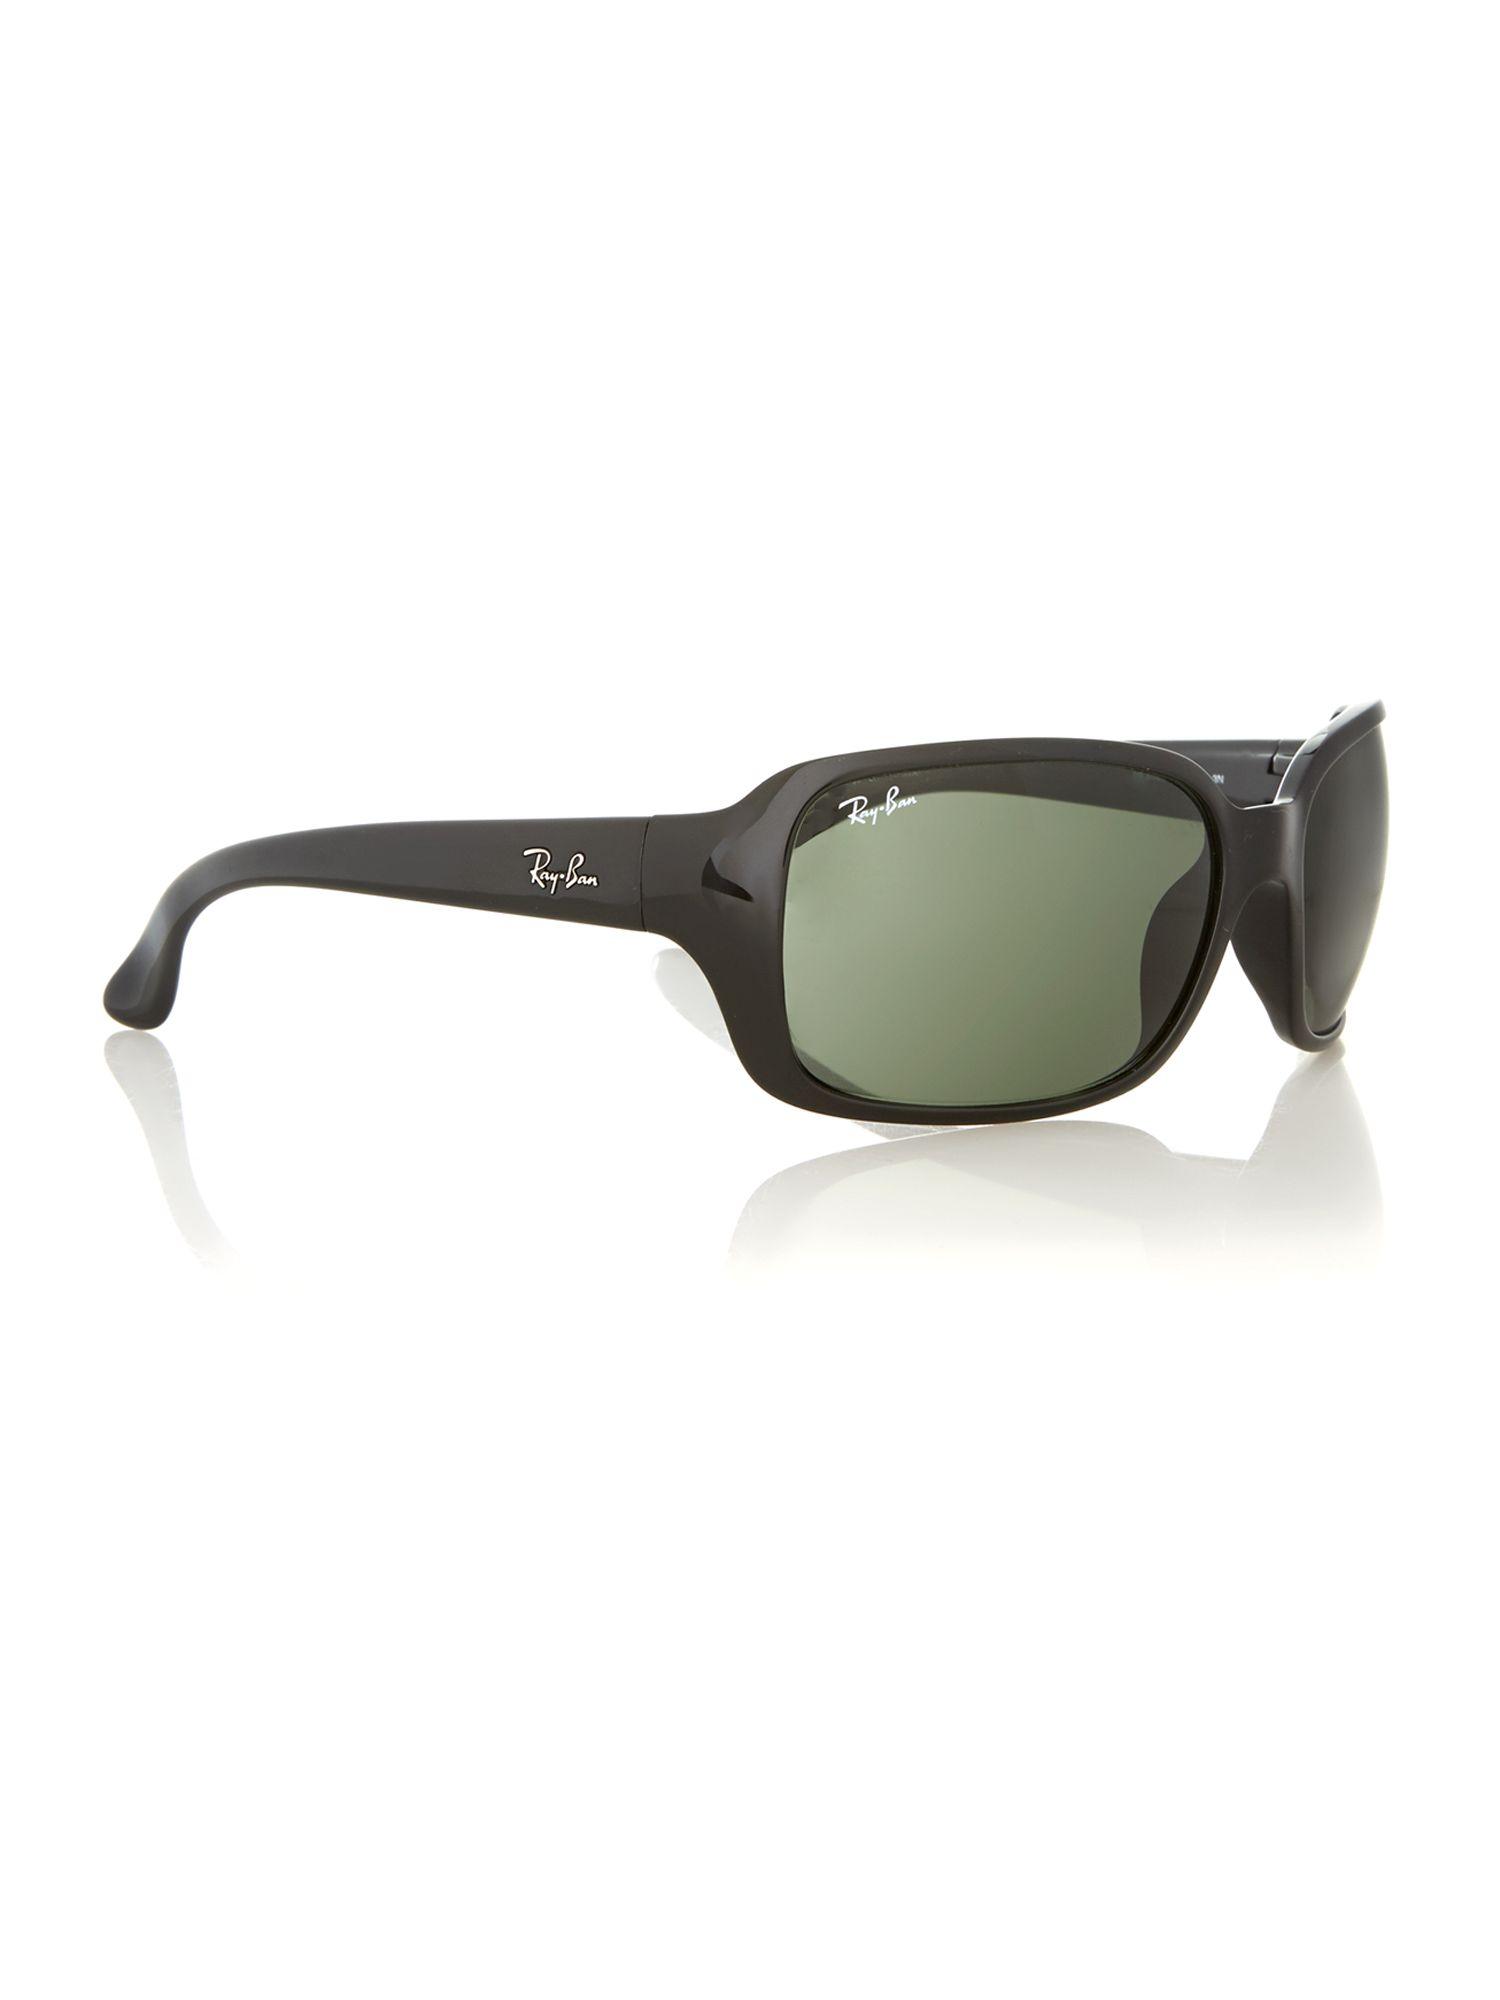 Unisex black rectangular sunglasses